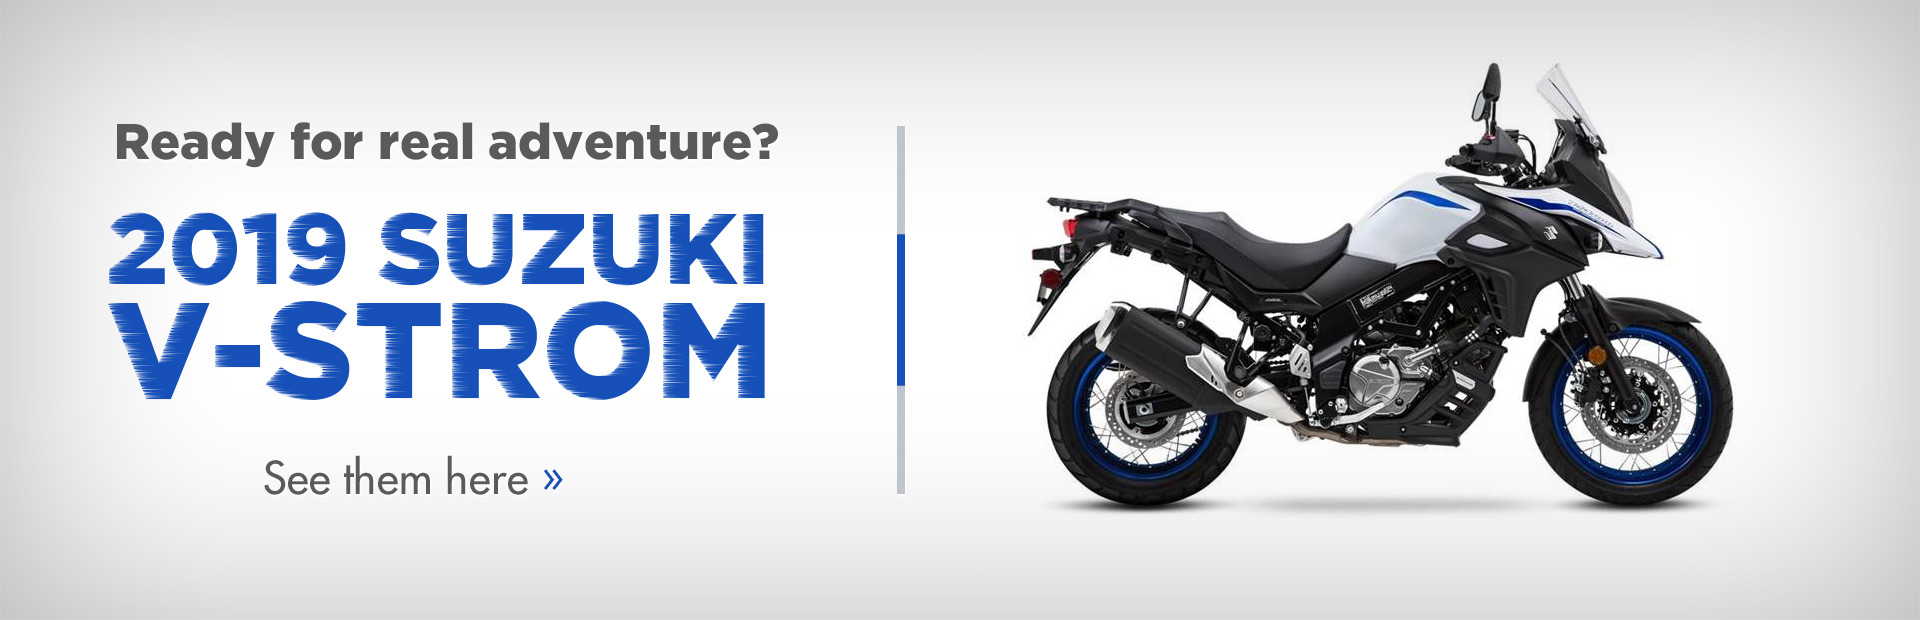 2019 Suzuki V-Strom: Click here to view the models.